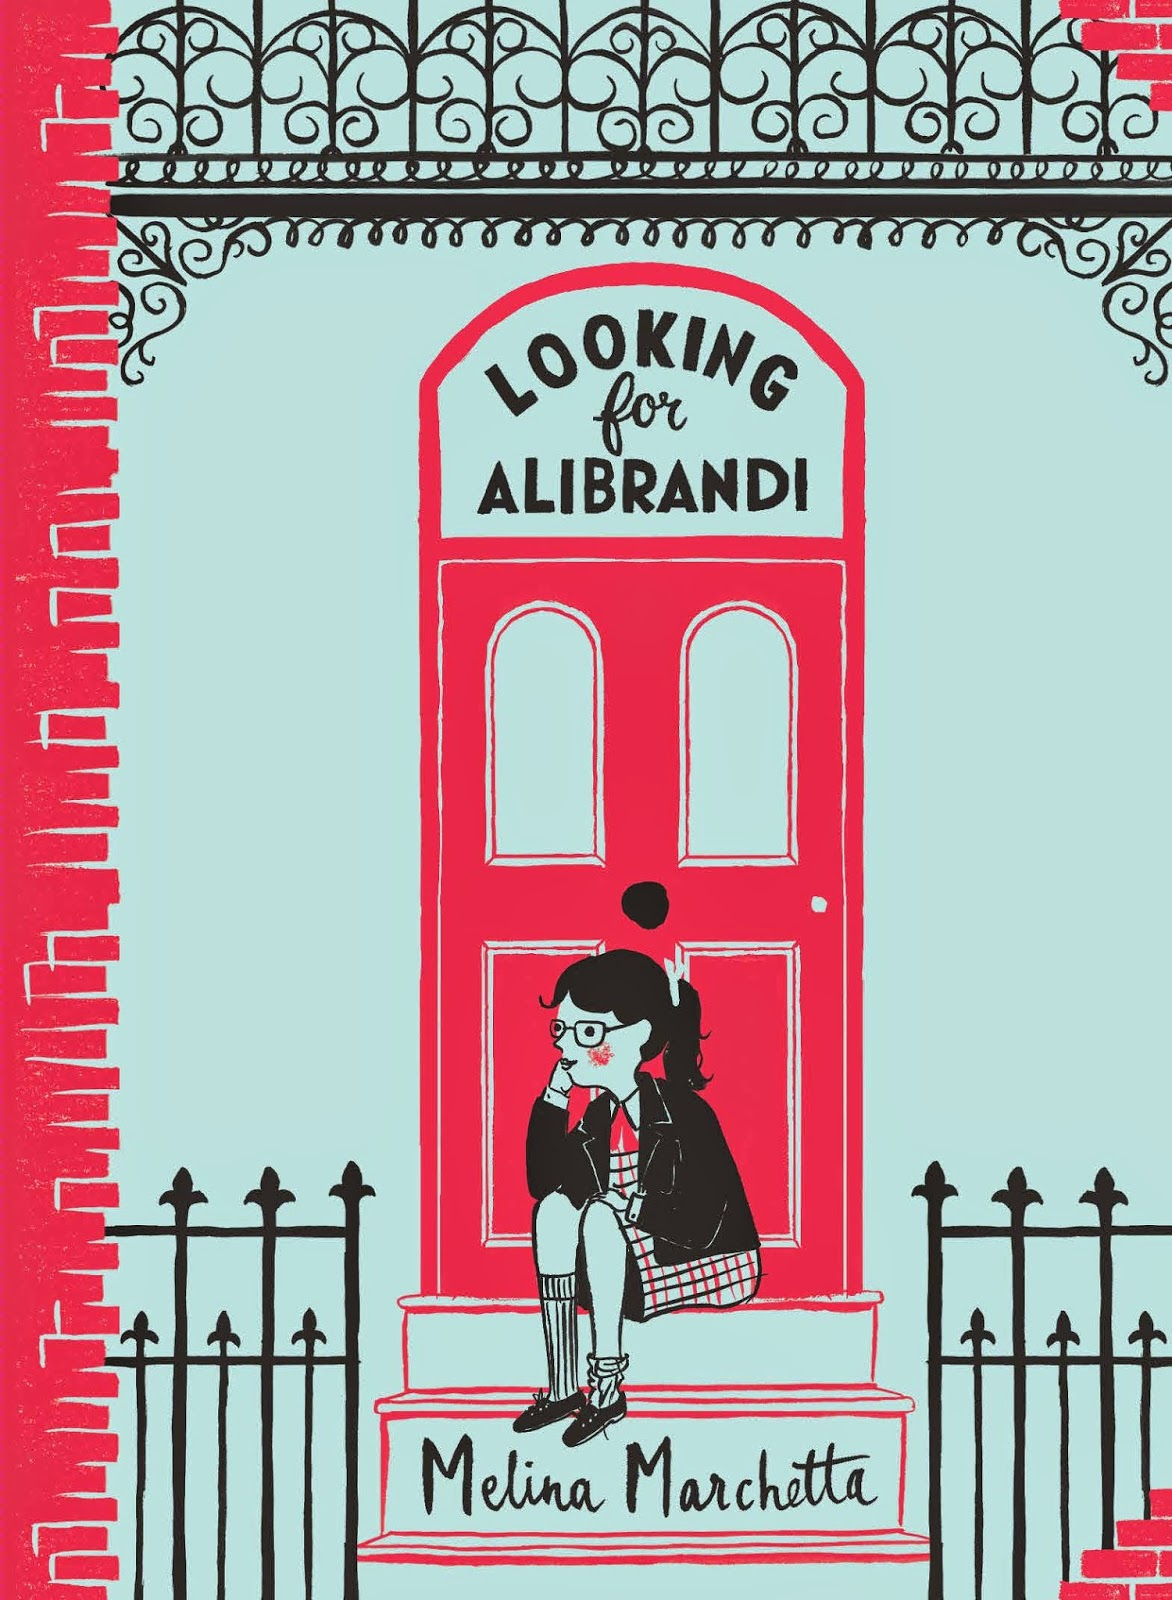 Looking for Alibrandi by Melina Marchetta book cover